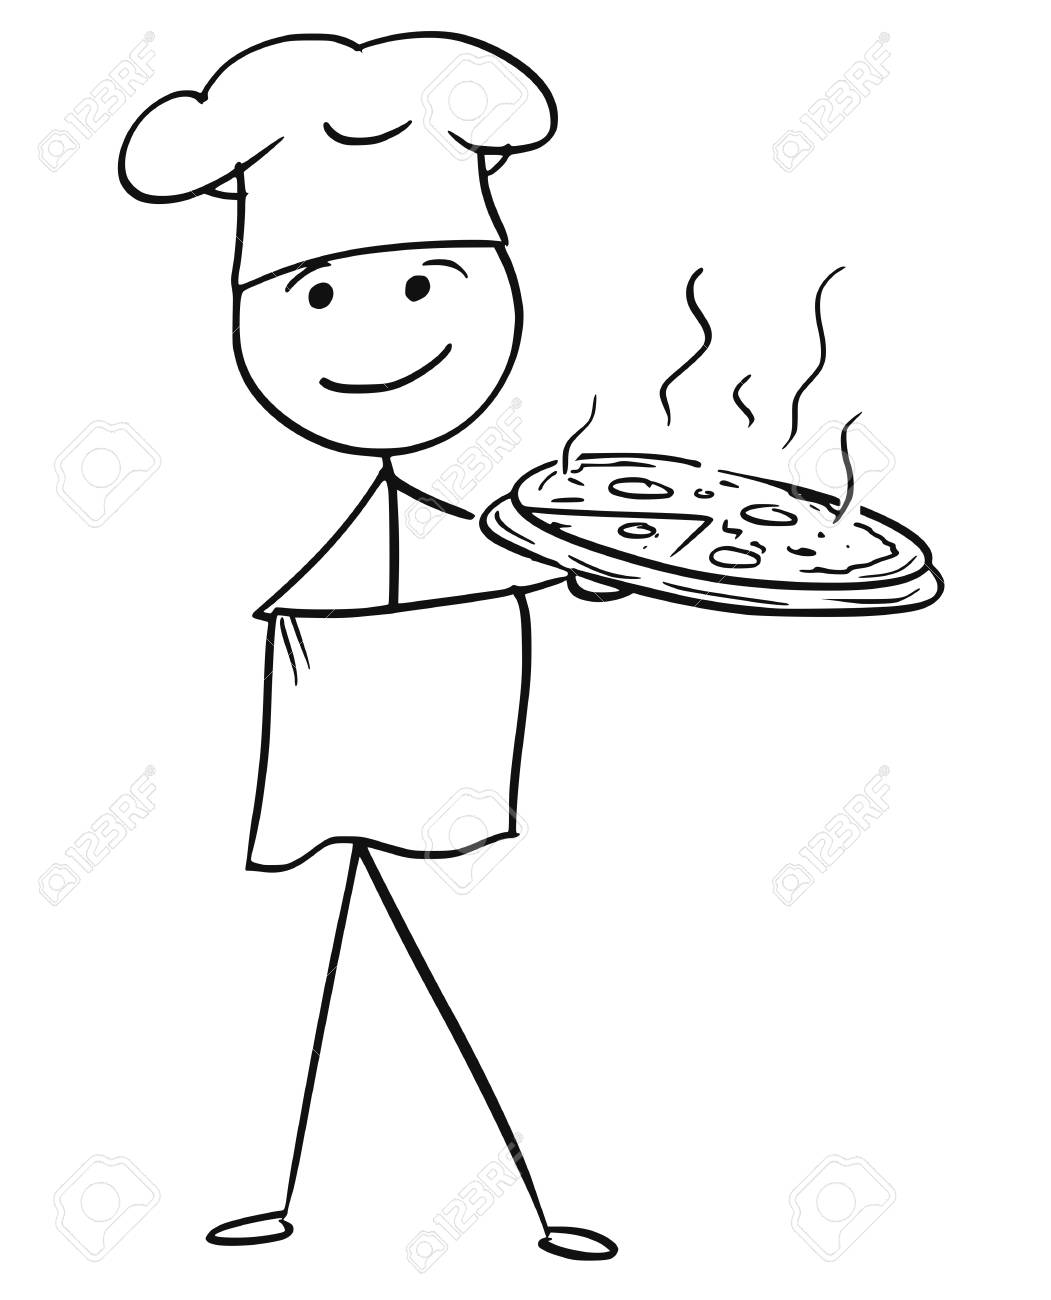 1051x1300 Cartoon Vector Stick Man Stickman Drawing Of Male Cook Chef In